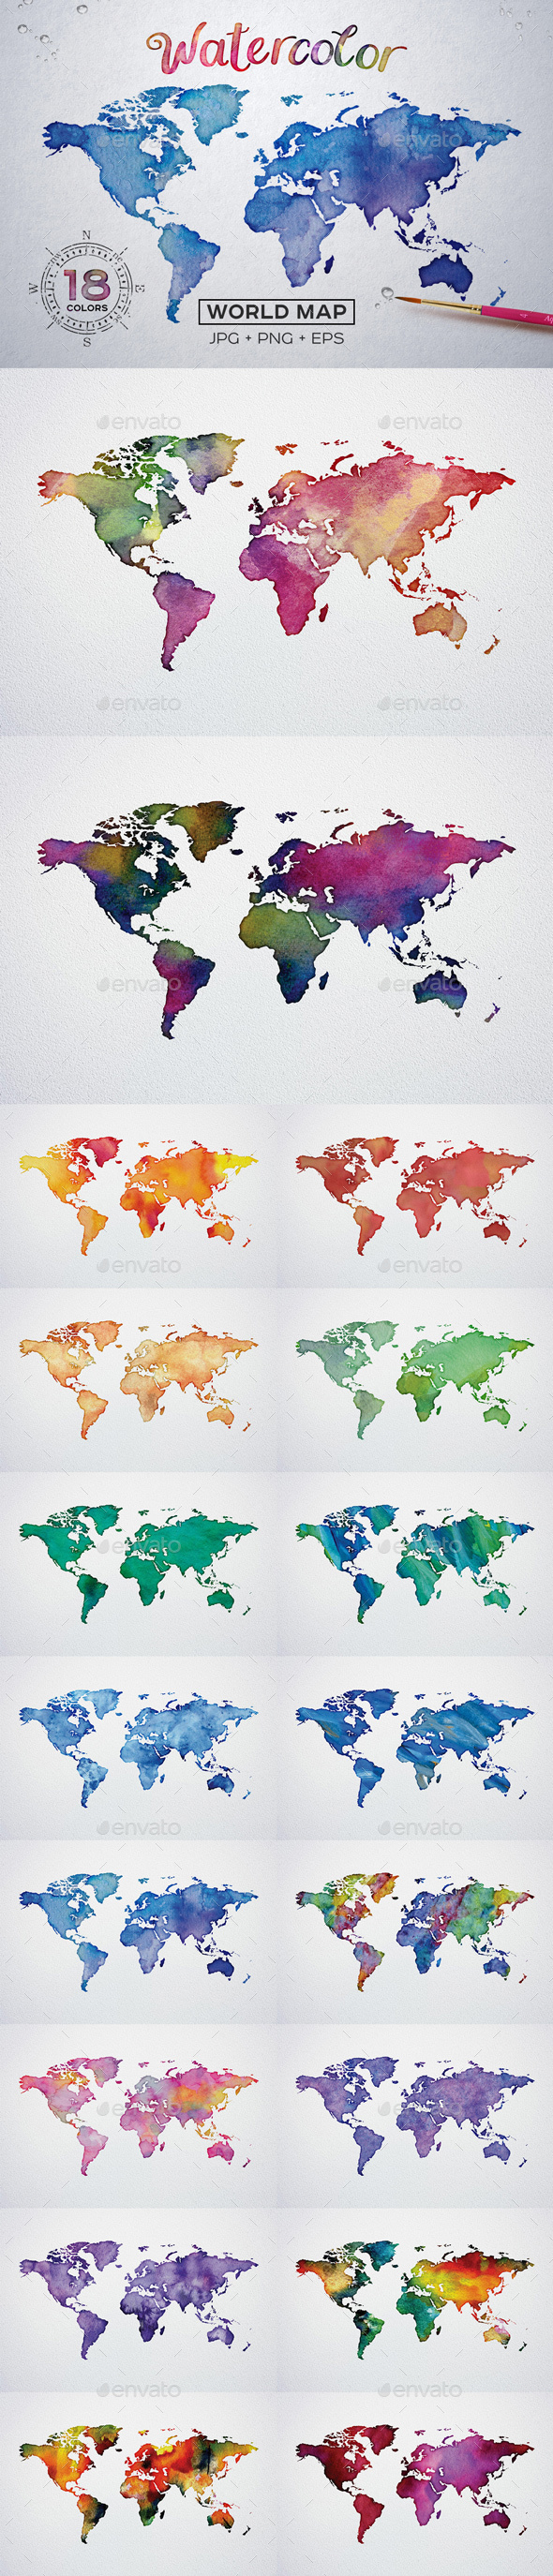 Watercolor world map printable poster 18 vector and raster worldmap watercolor world map printable poster 18 vector and raster worldmap miscellaneous backgrounds gumiabroncs Images